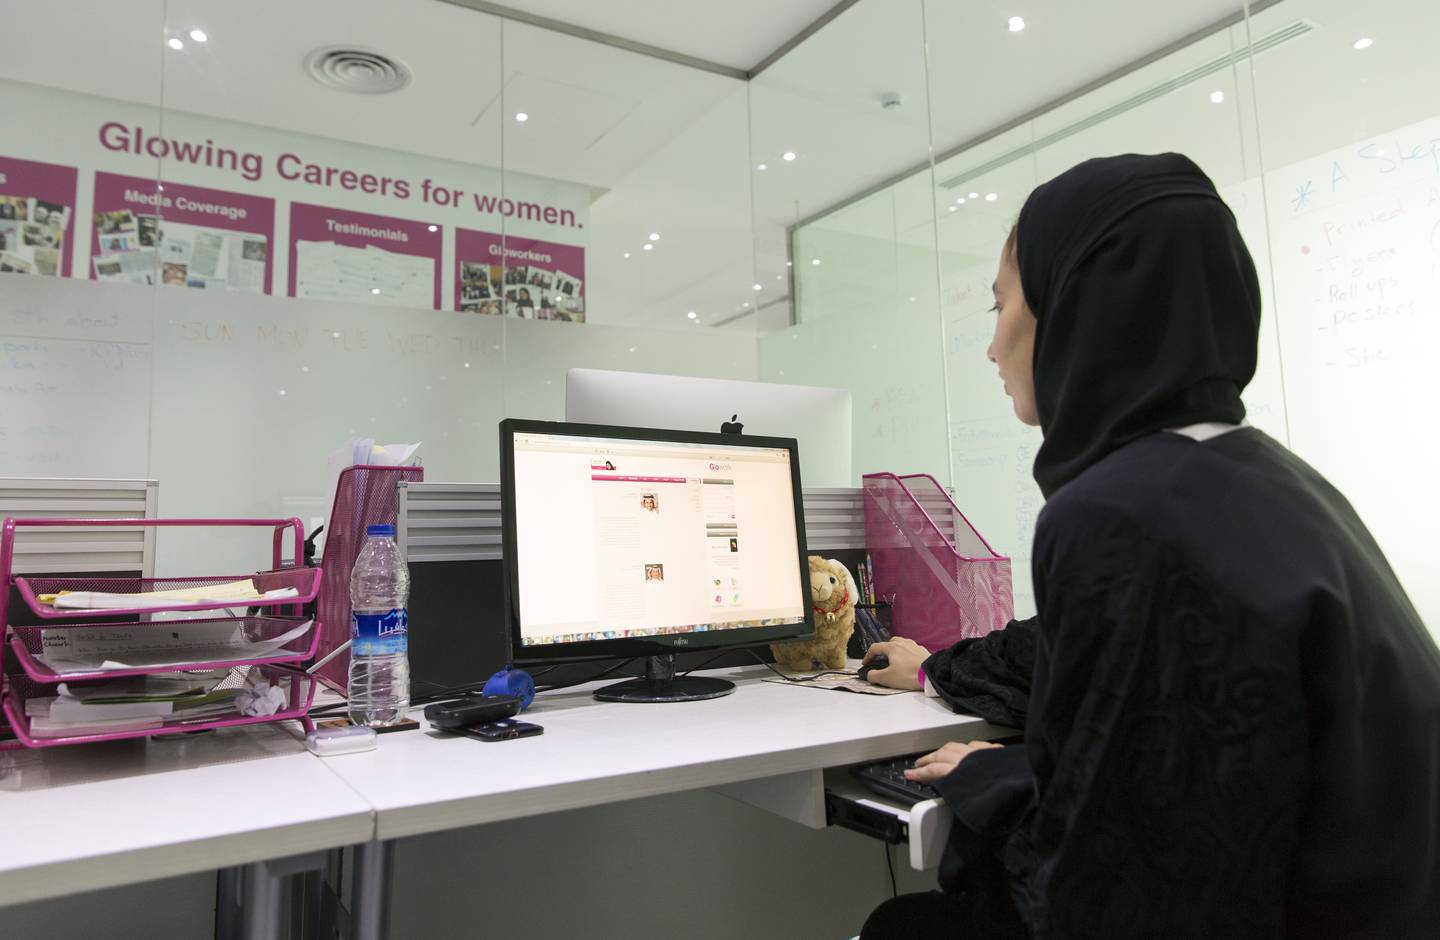 Riad, Saudi Arabia - October 19: A young Arab woman sitting in front of a computer in the employment agency for women 'Glowork' on October 19, 2015 in Riad, Saudi Arabia. (Photo by Thomas Koehler/Photothek via Getty Images)